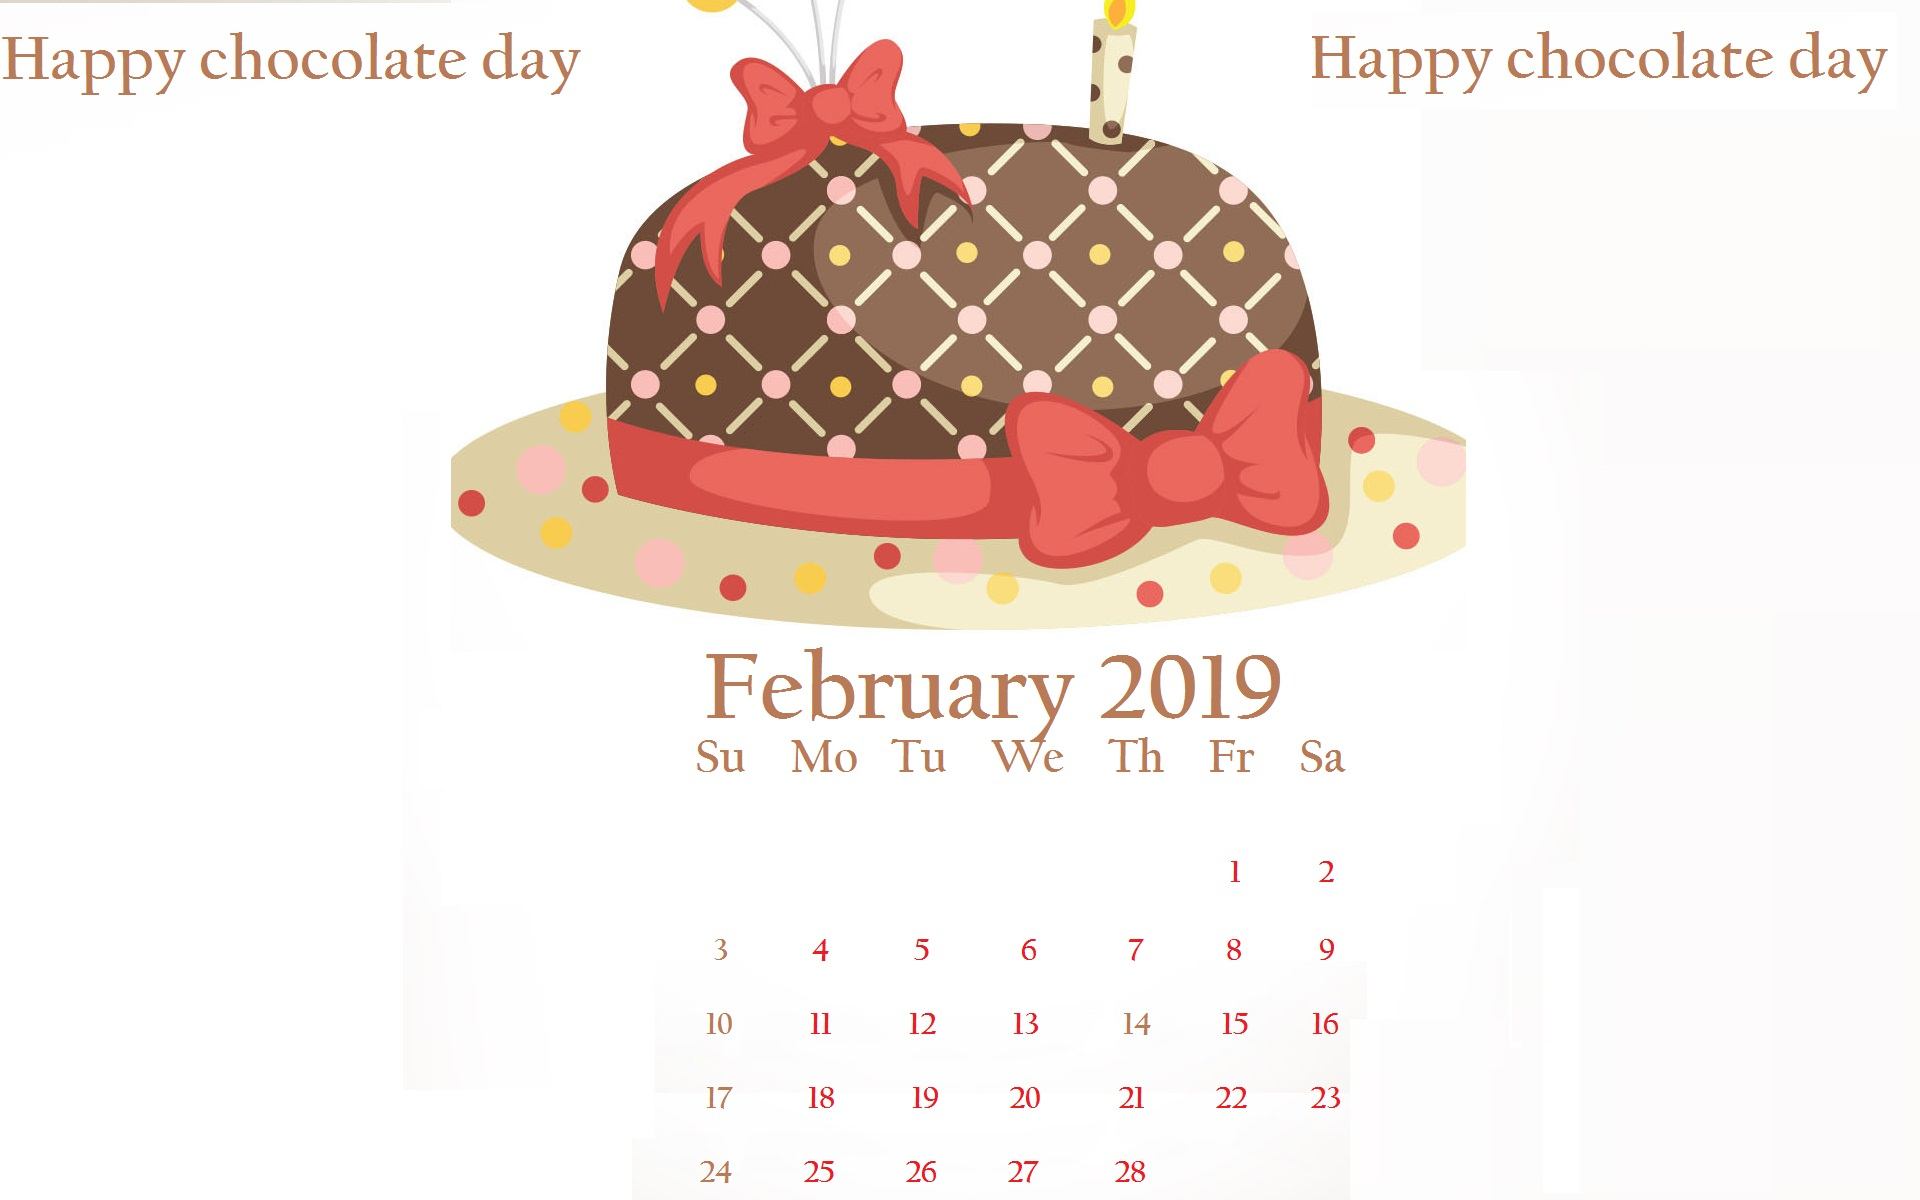 February 2019 Chocolate day Desktop Calendar